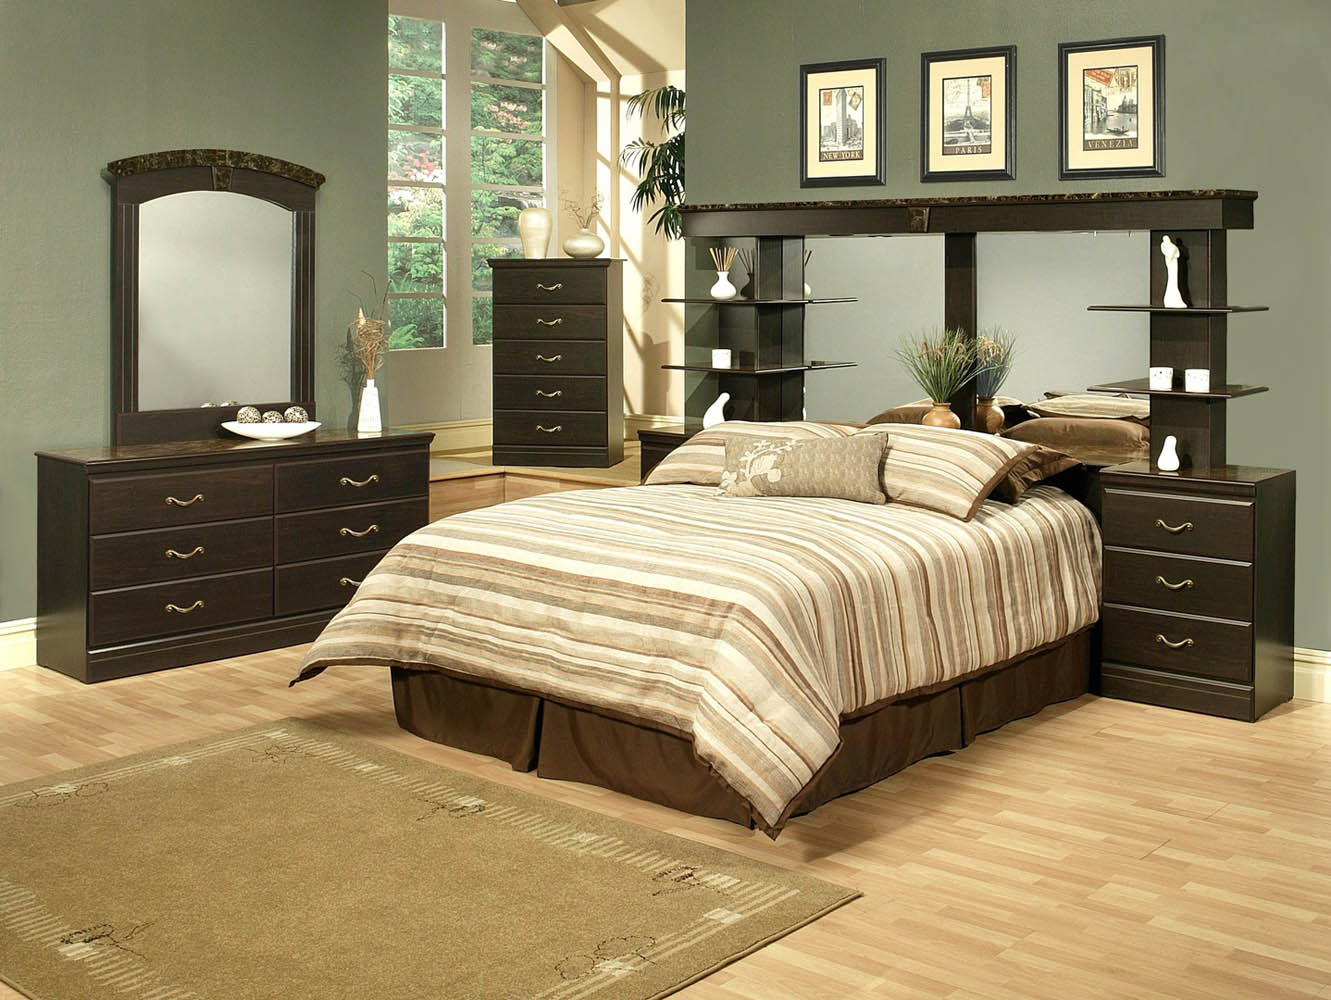 4 Piece Espresso Finish Queen Wall Unit Bedroom Set